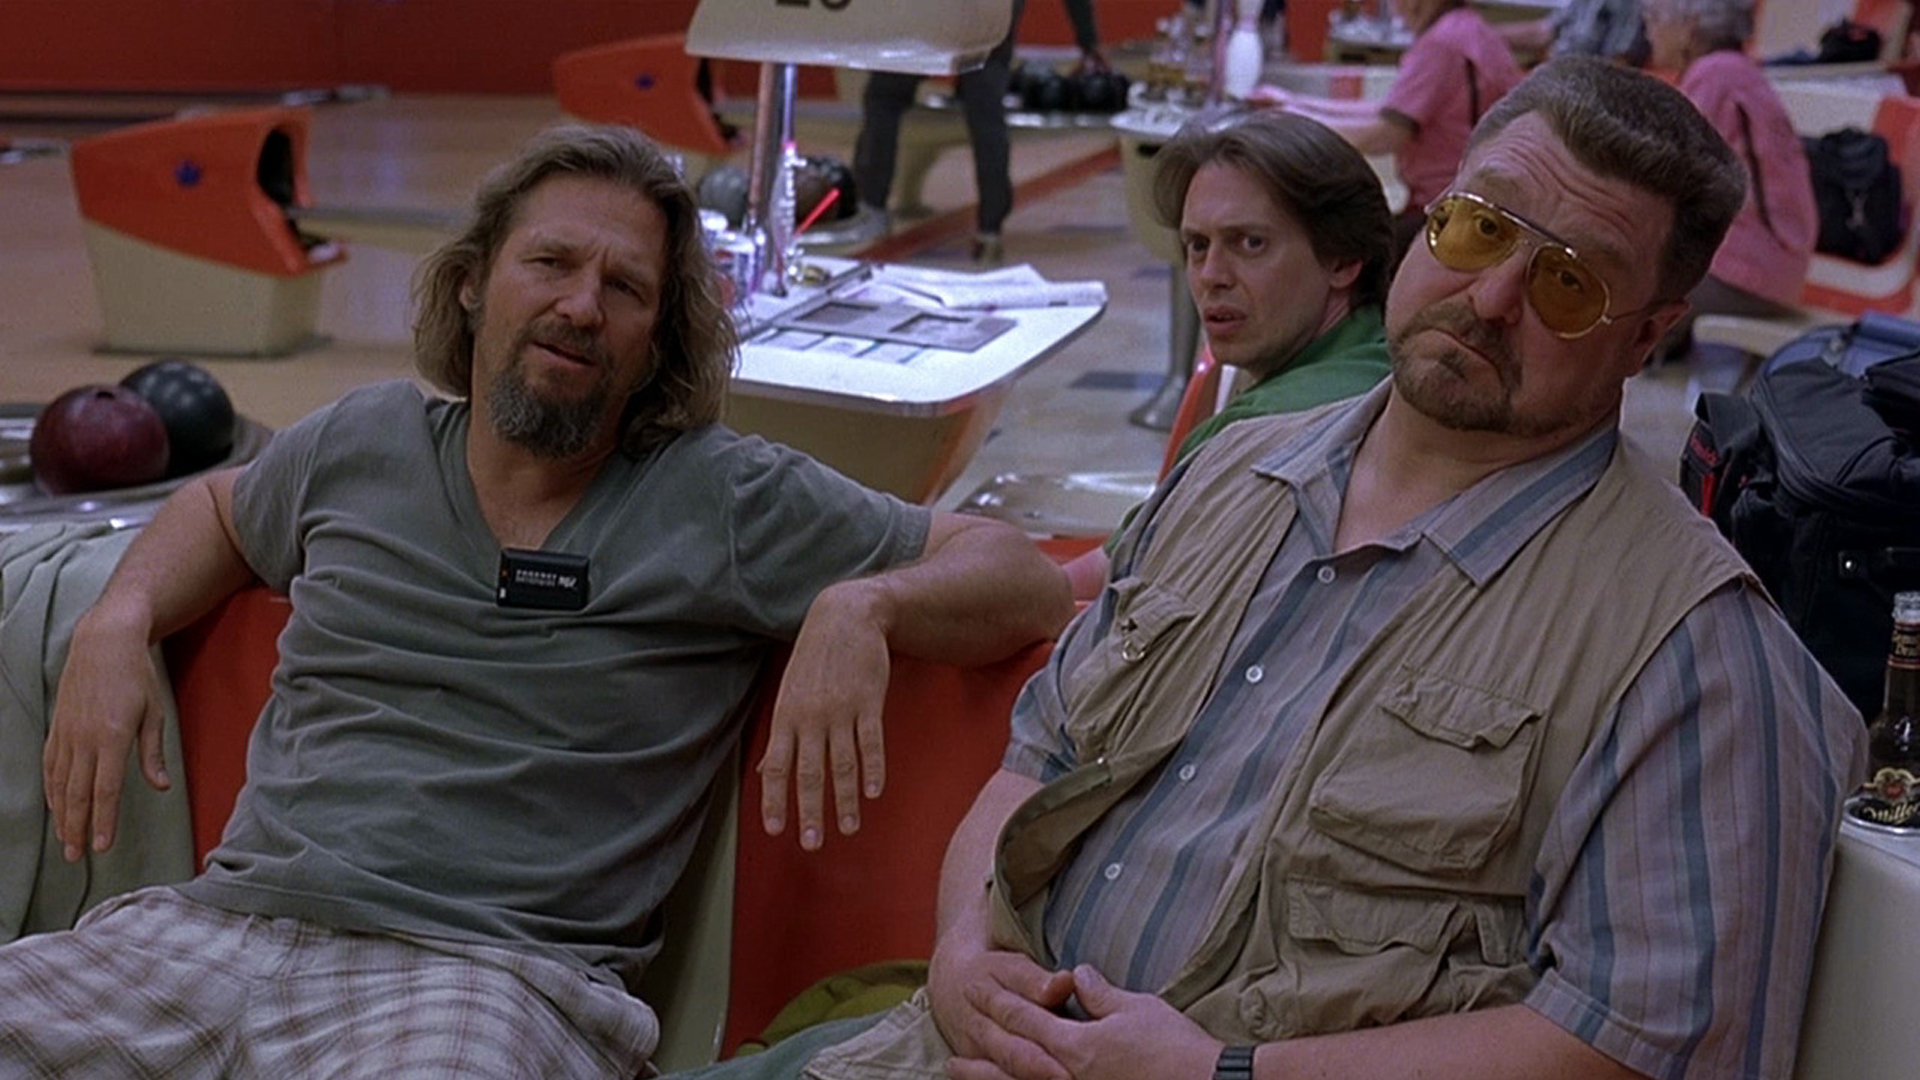 Cult tv tip van het weekend: The Big Lebowski